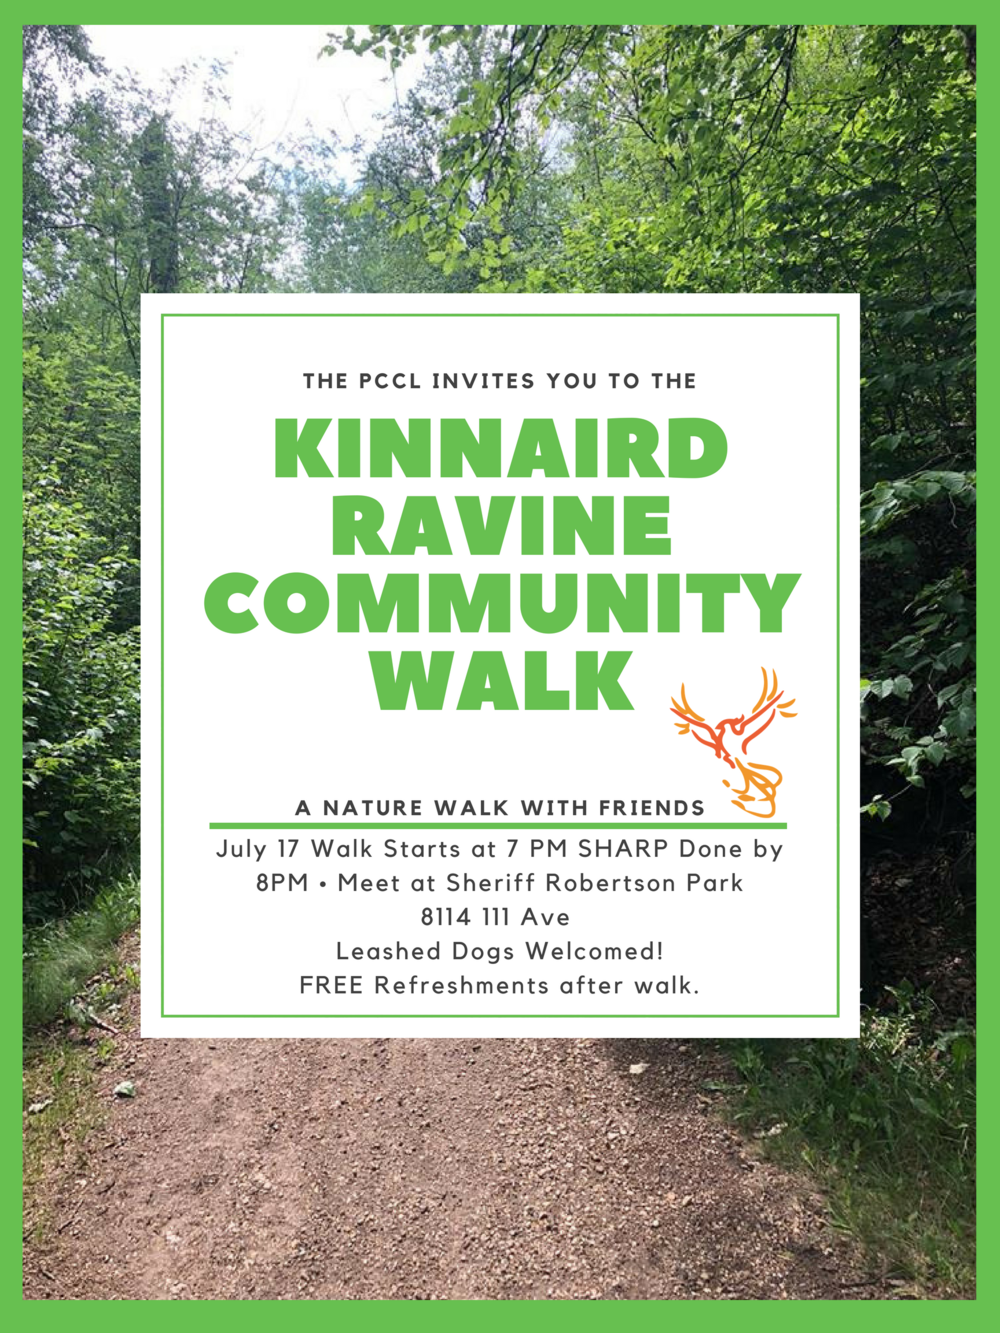 Join us for a walk through the gorgeous Kinnaird Ravine. Bring your family, friends and your   four legged   best   friend   for a great time!     Check out our Facebook Event:  https://www.facebook.com/events/380154539174216/